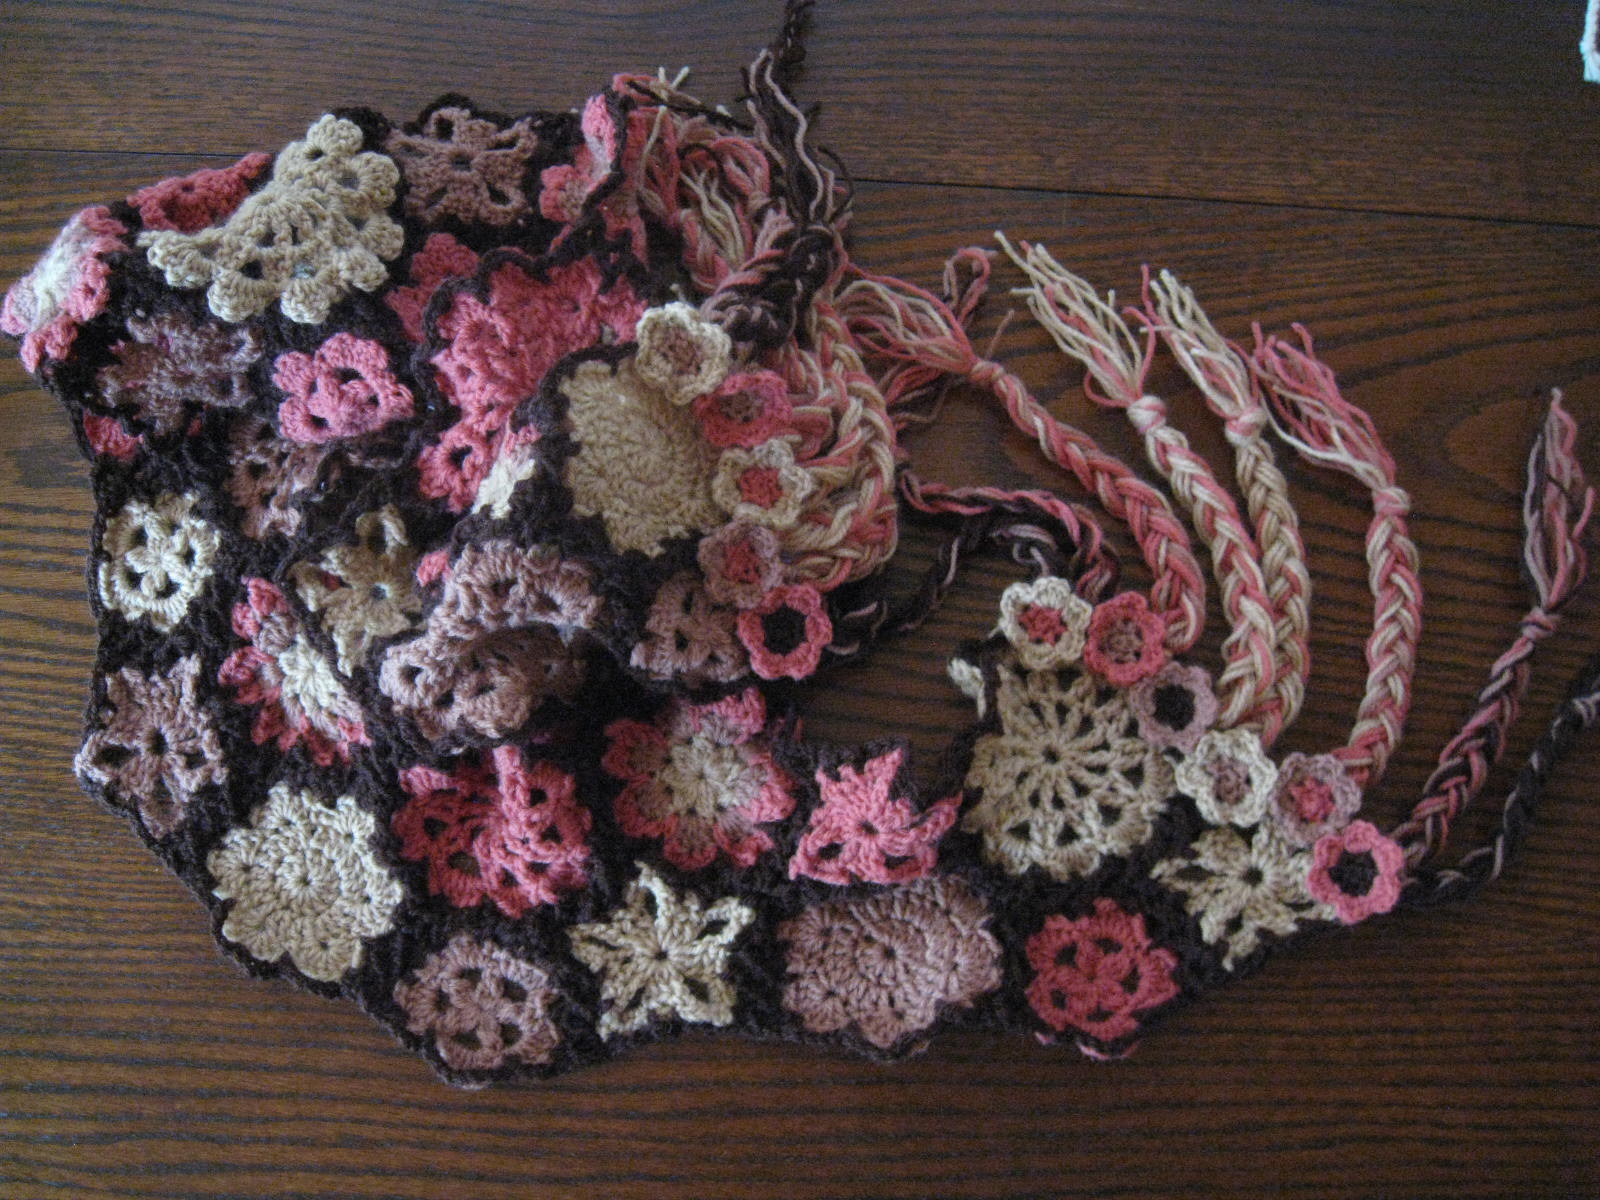 Dawns Crochet Blog: Flower Scarf